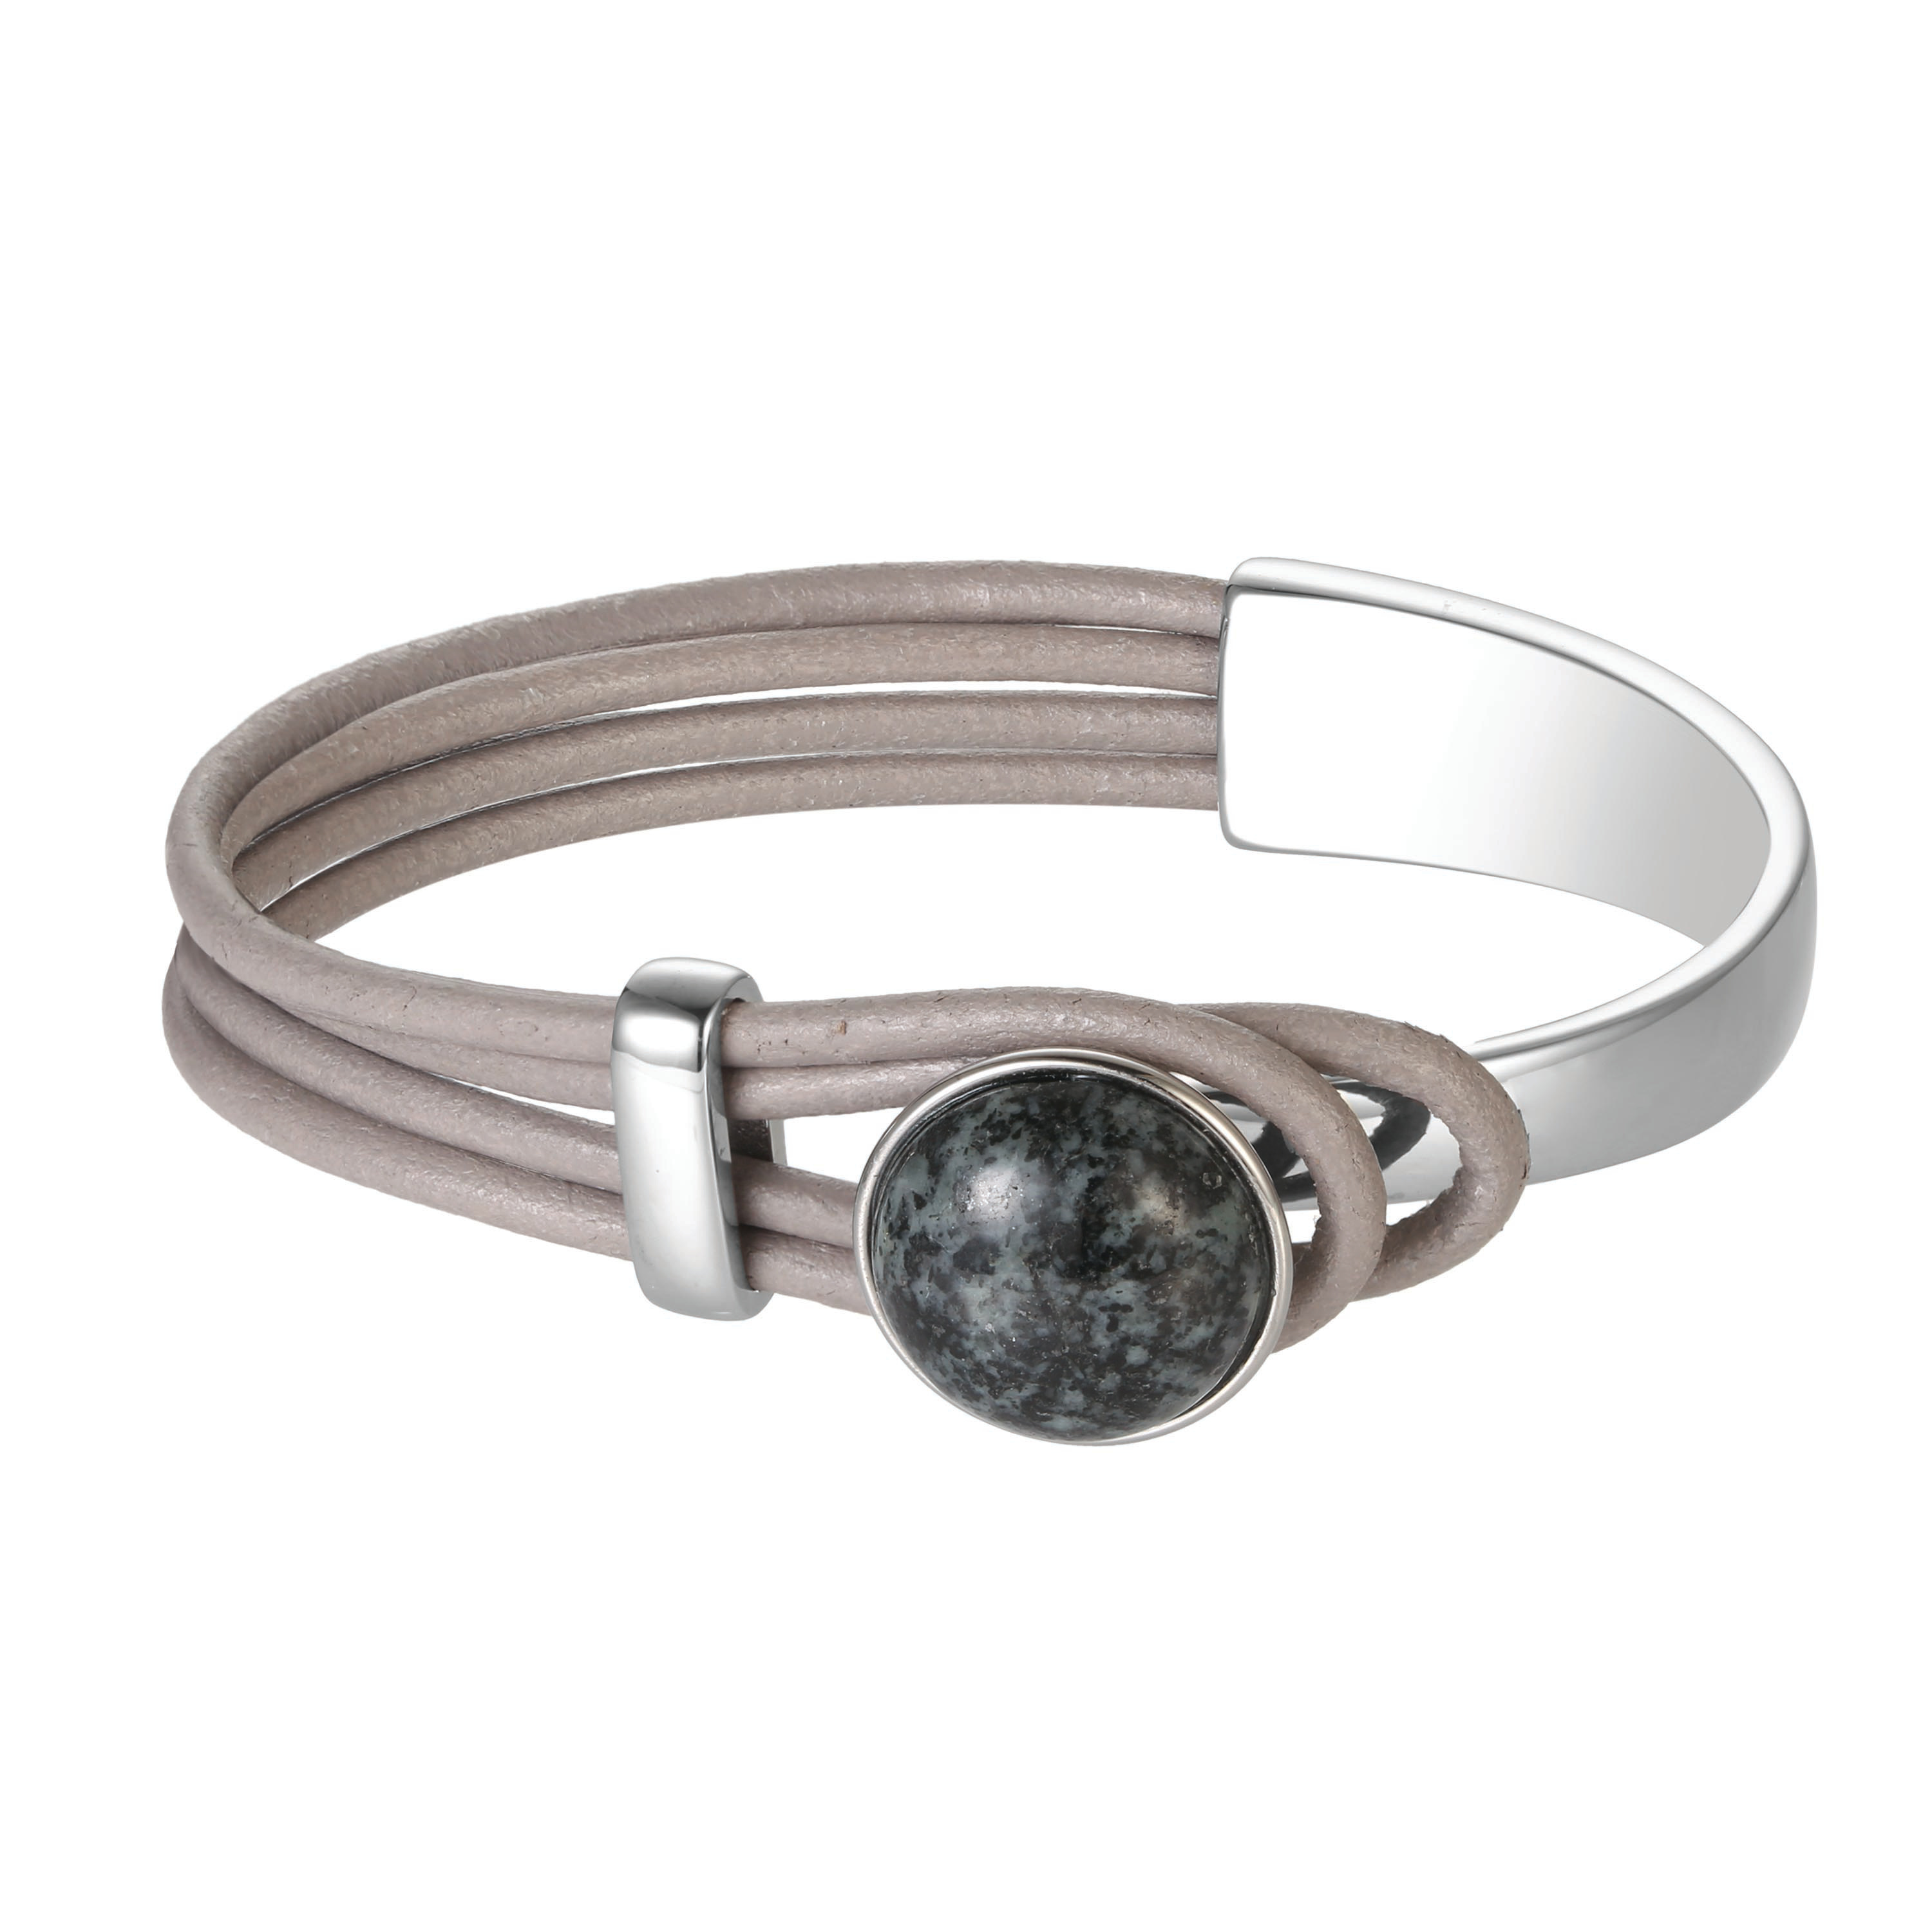 Leather and Granite Bracelet